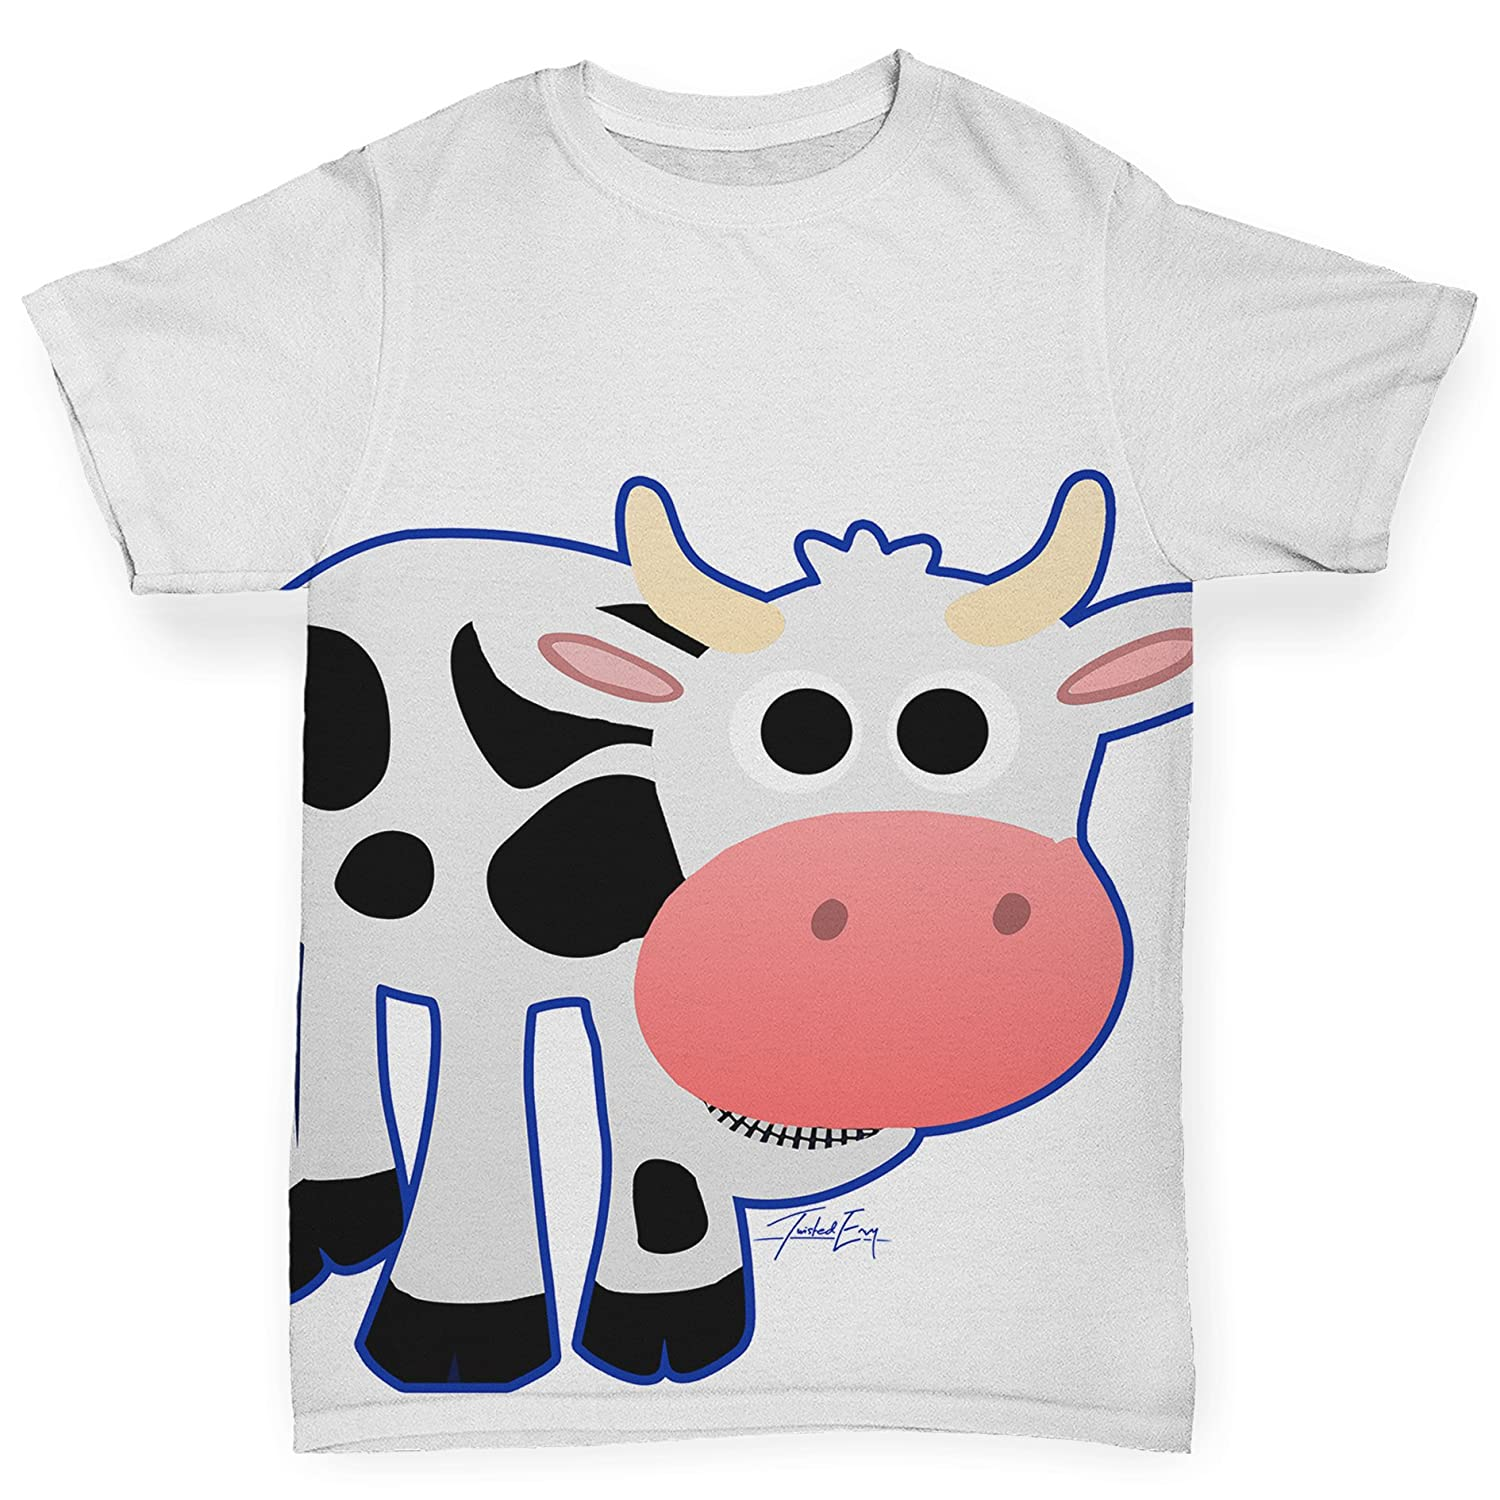 TWISTED ENVY Fat Cow Baby Toddler Funny All-Over Print Baby T-Shirt